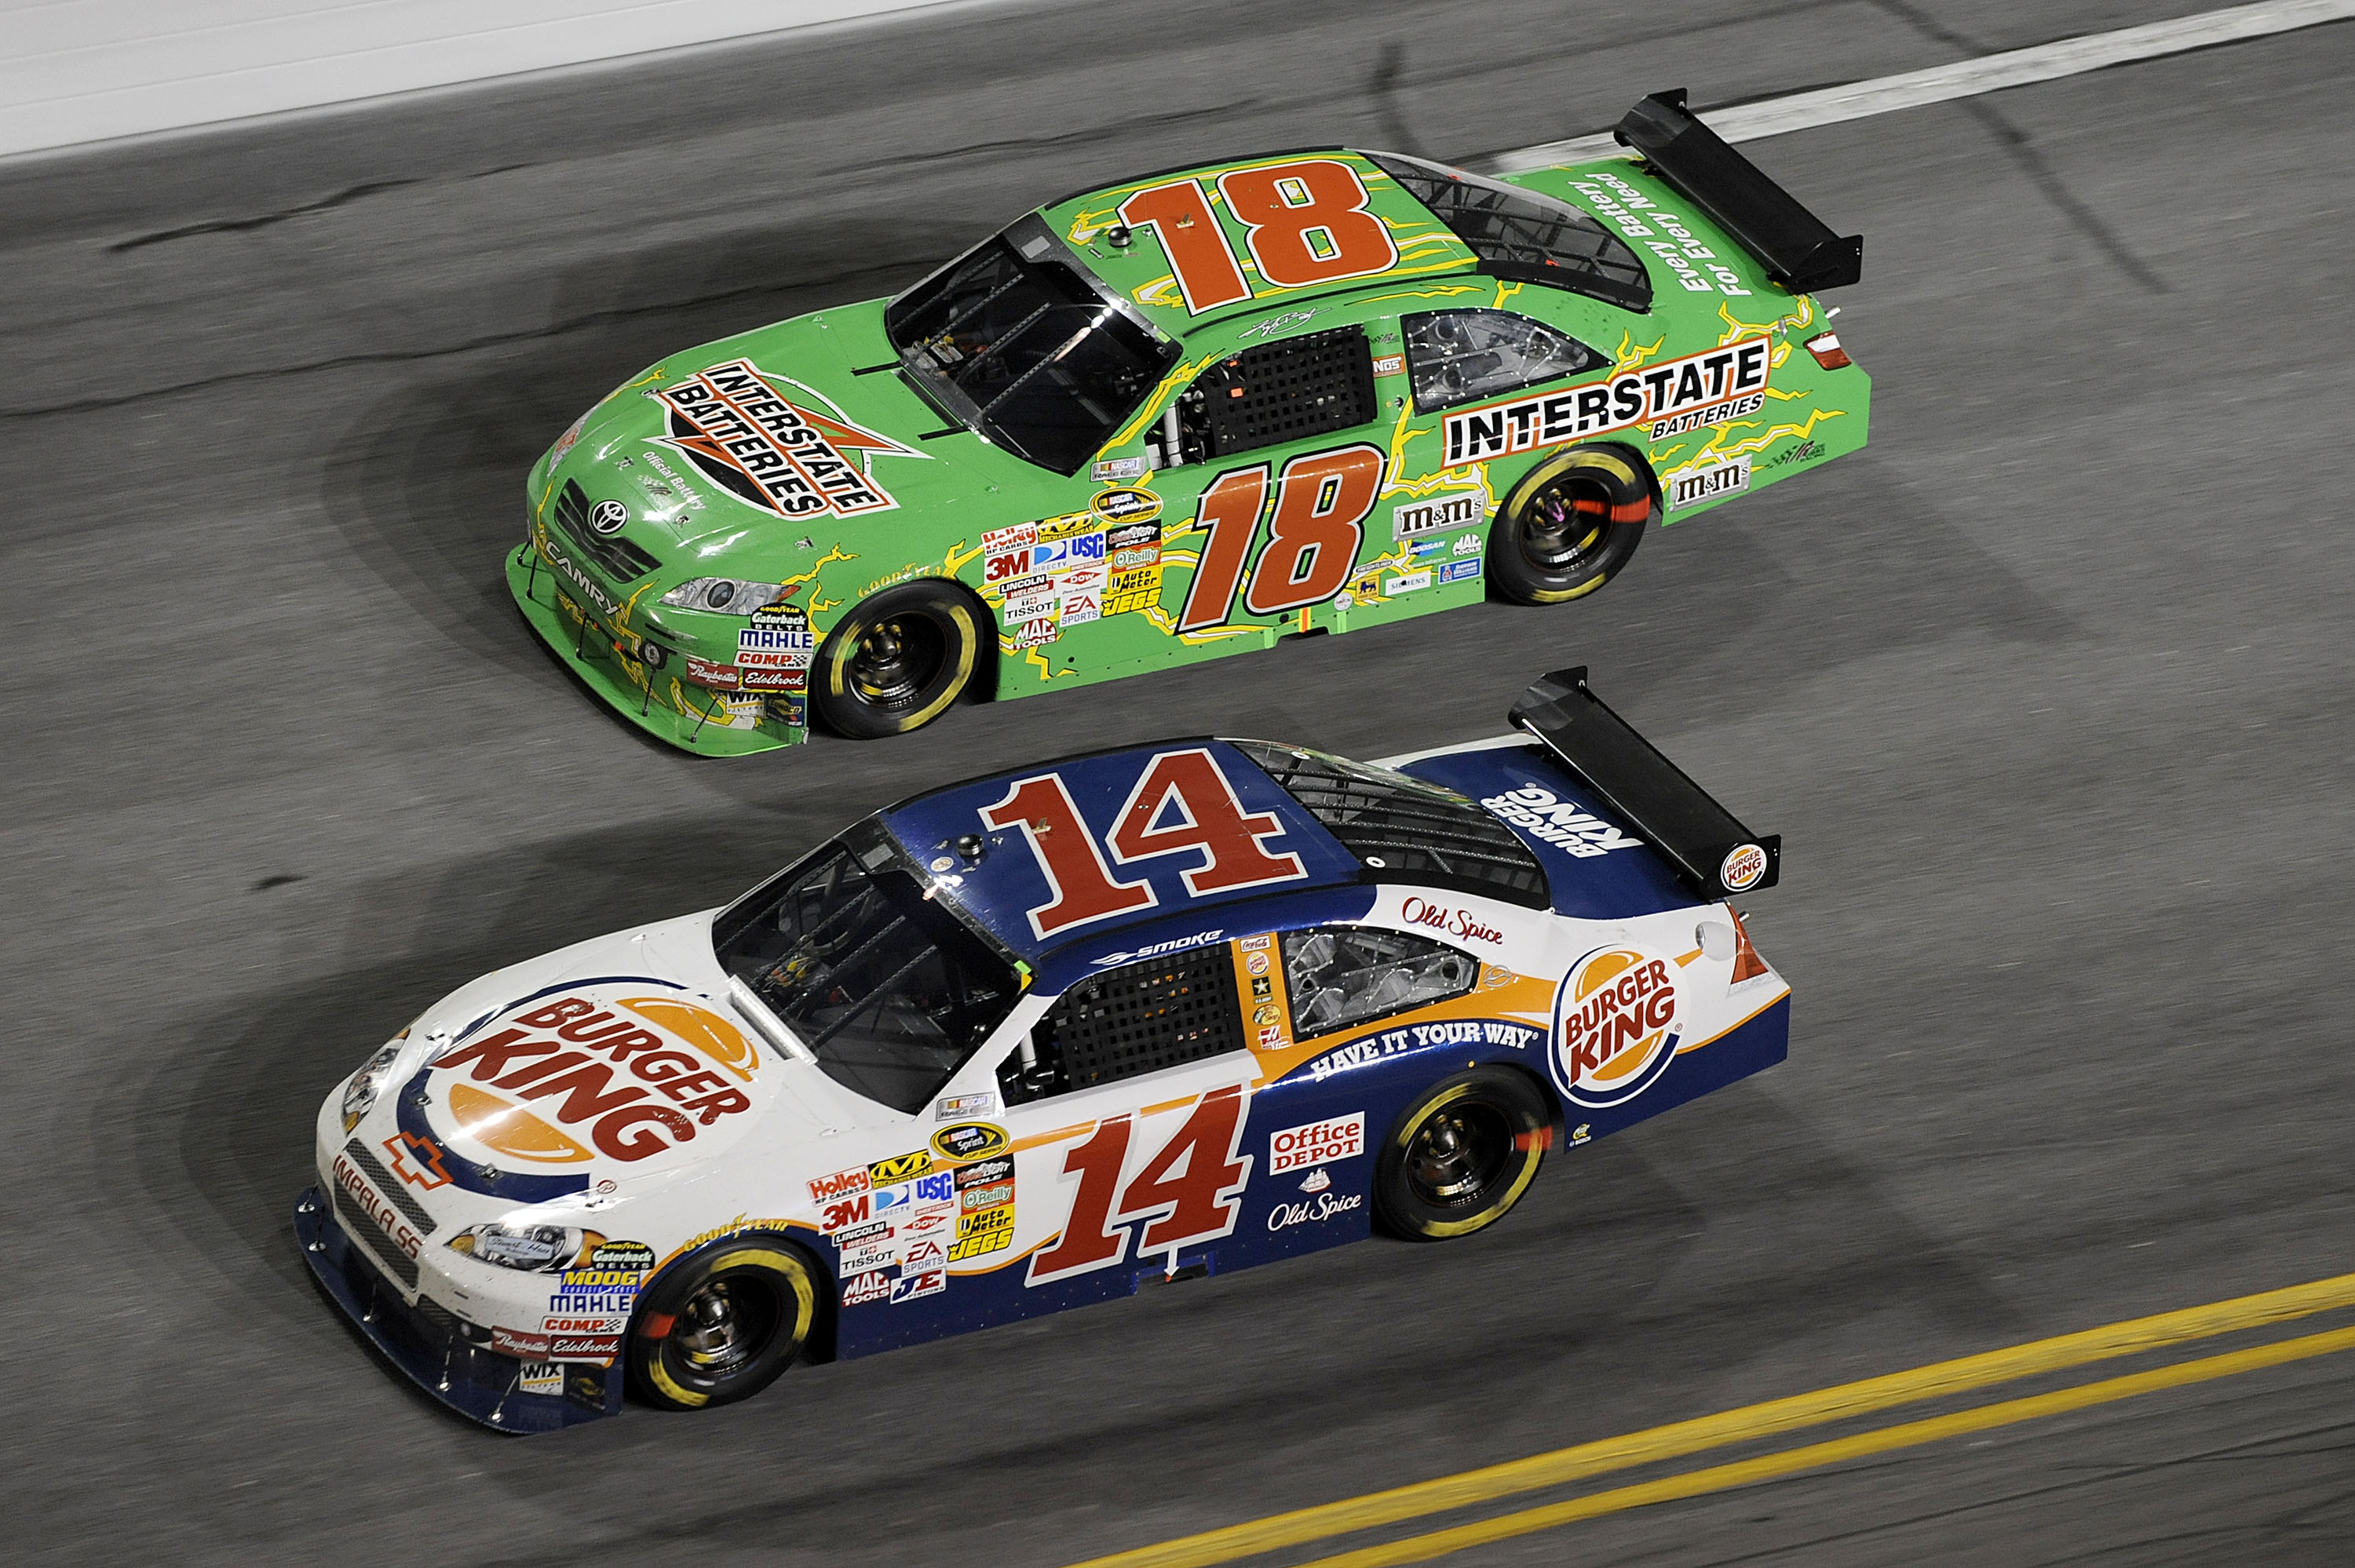 Two of NASCAR's fearest competitors faced off in this race.